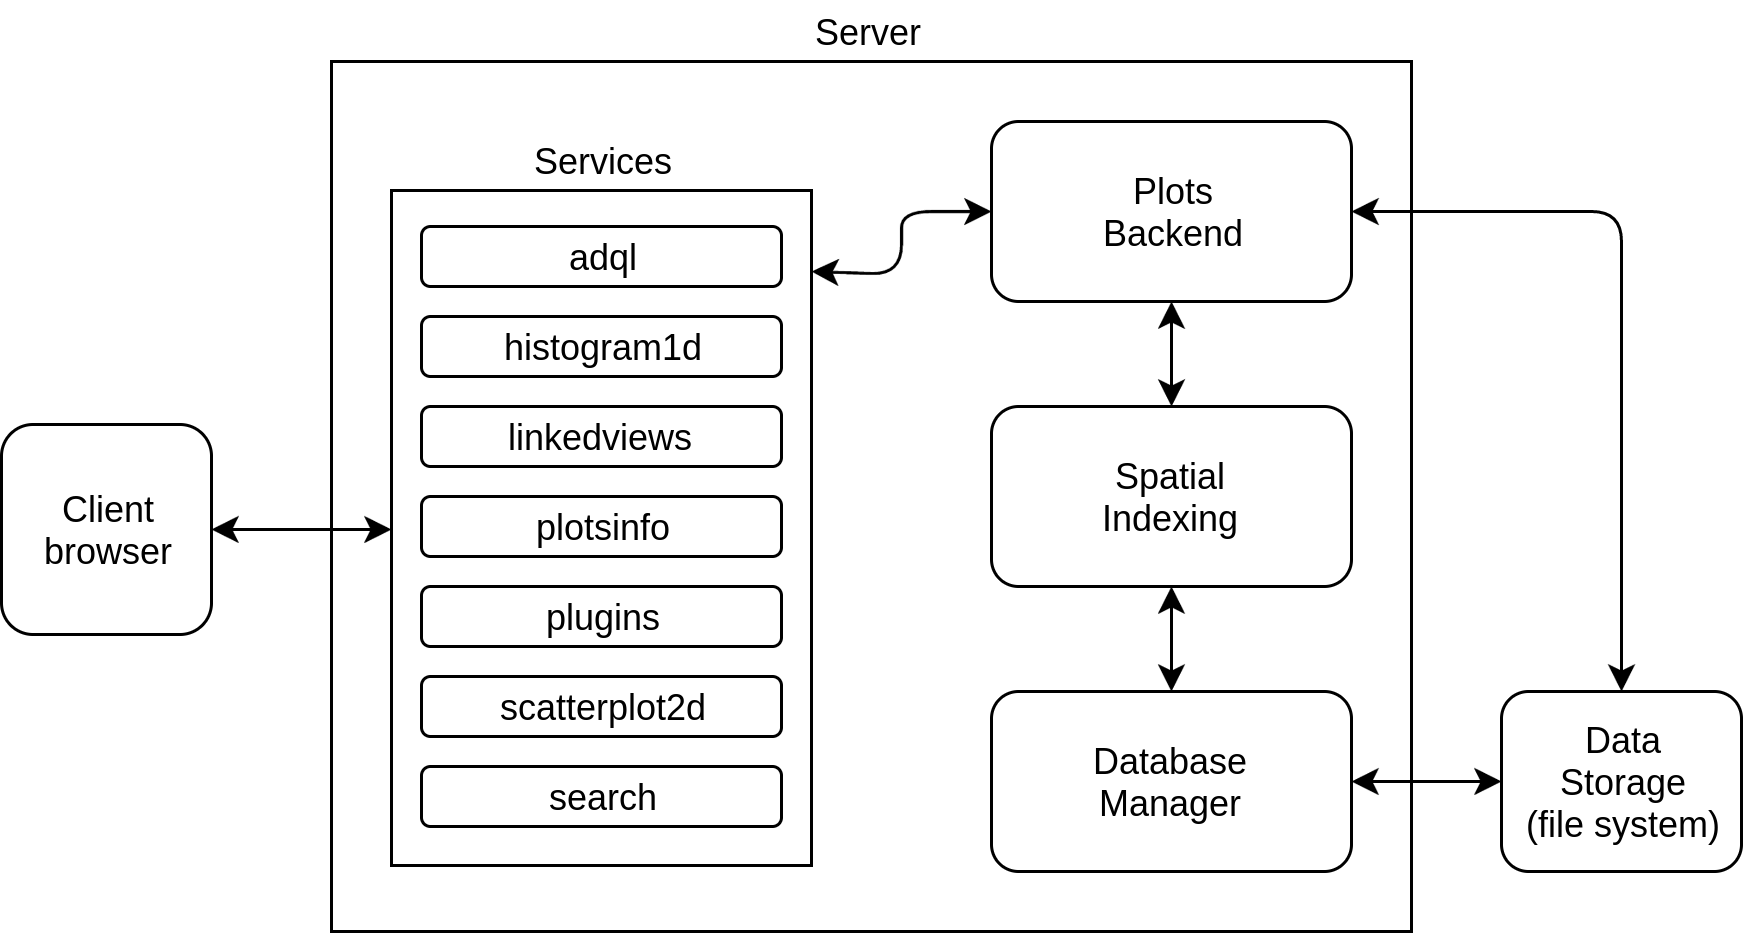 Static architecture diagram for the GAVS Server. It presents the components of the Server (Services, Plots Backend, Spatial Indexing, and Database Manager), how they are connected, and the context within the GAVS.